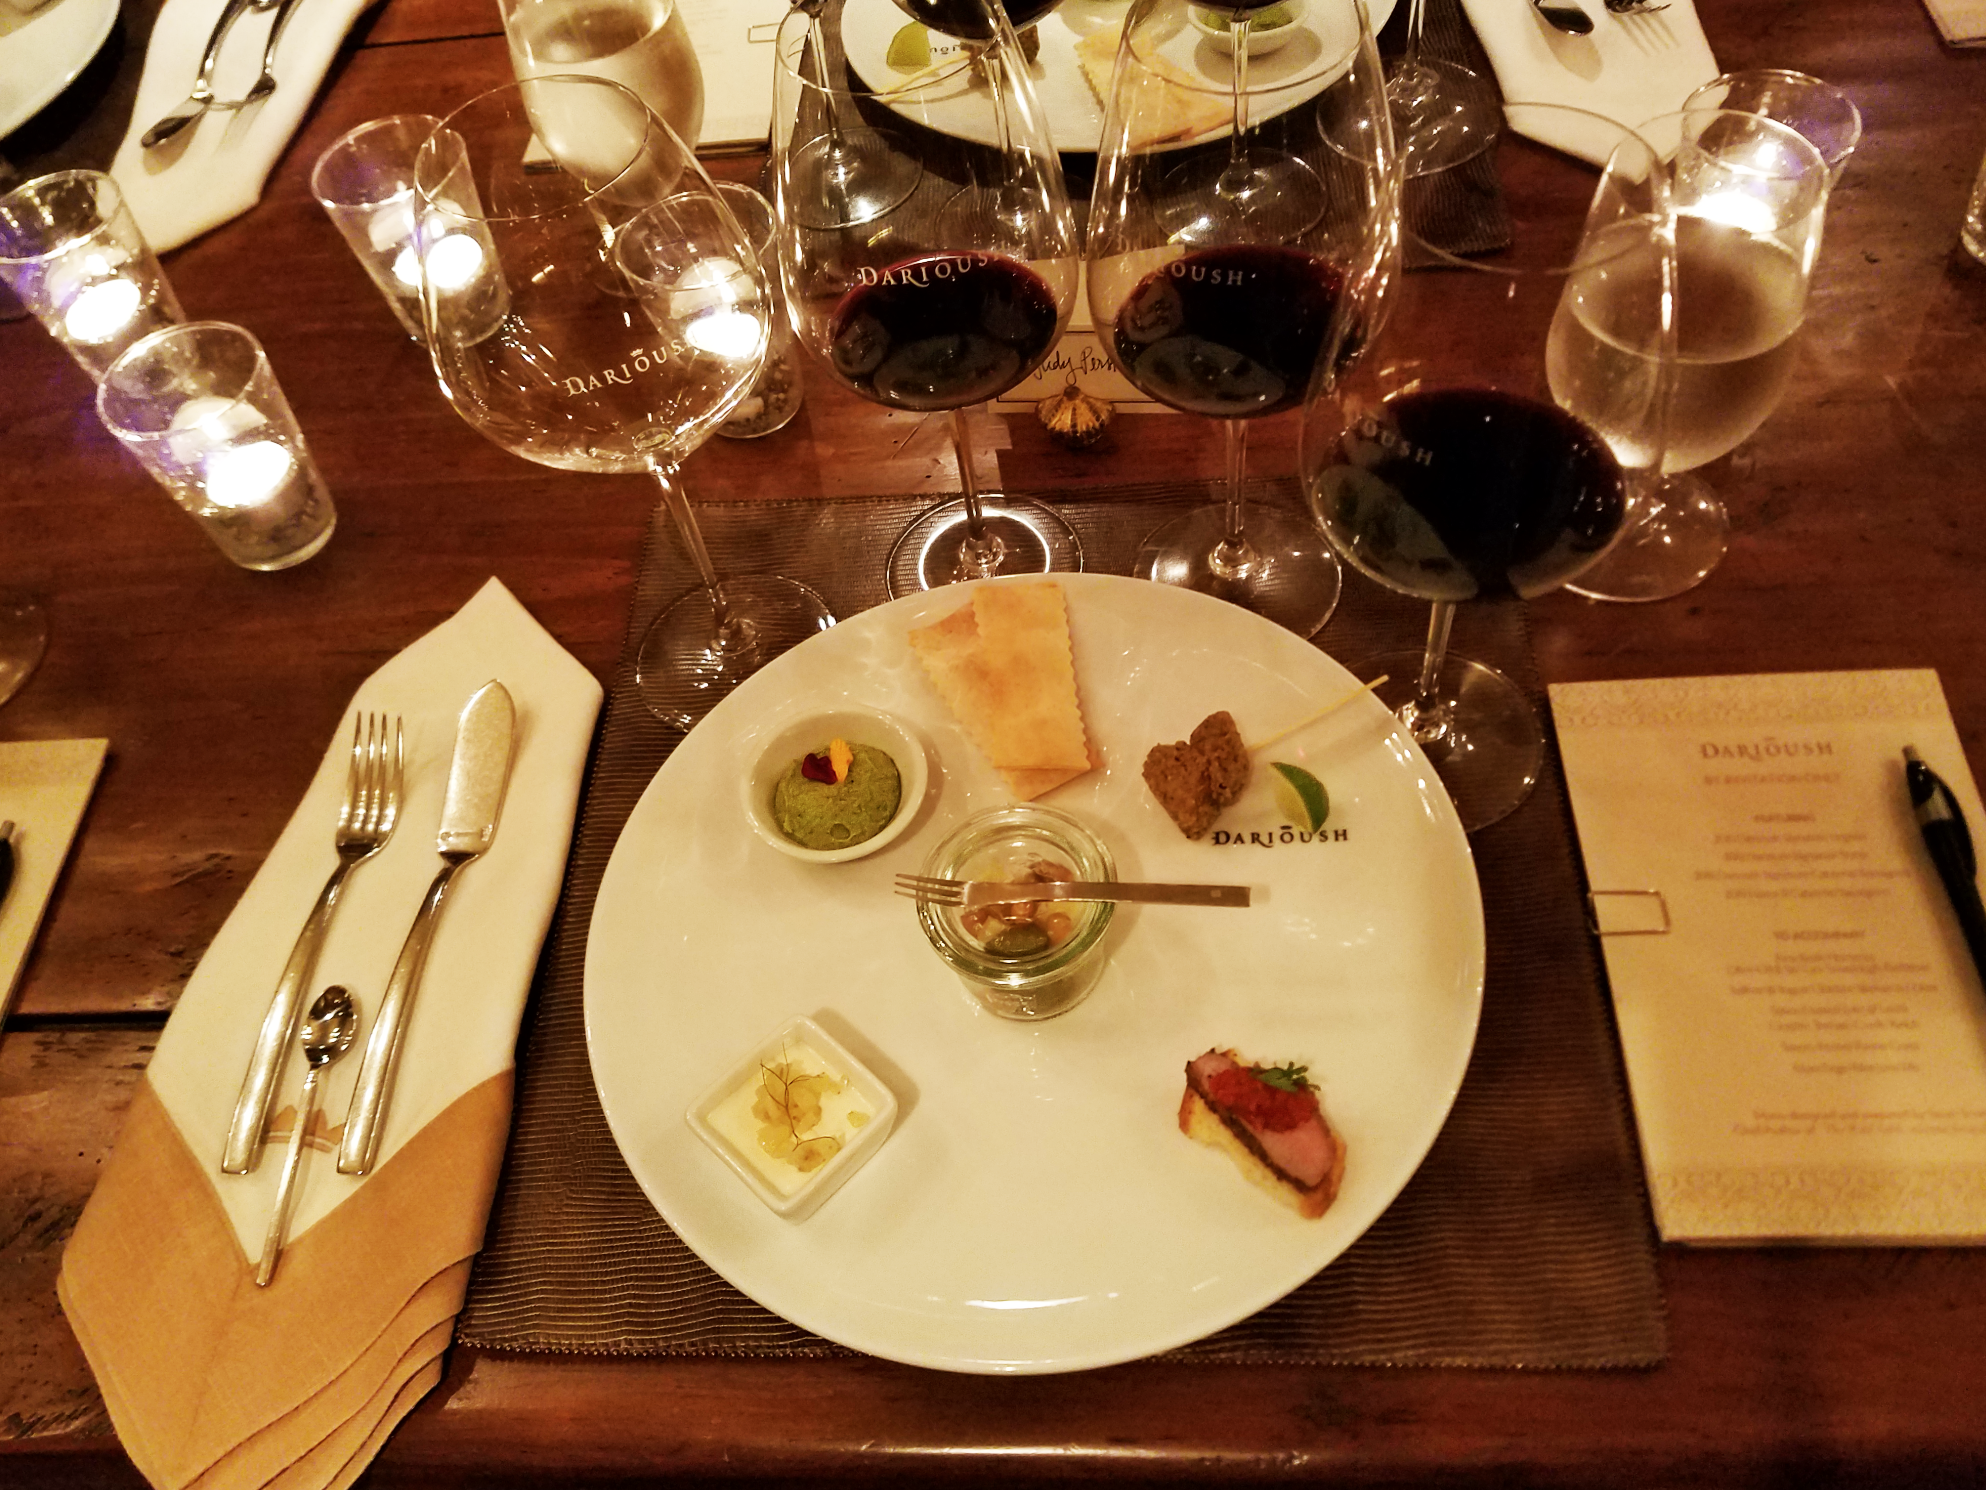 An exquisite food and wine tasting at Darioush.